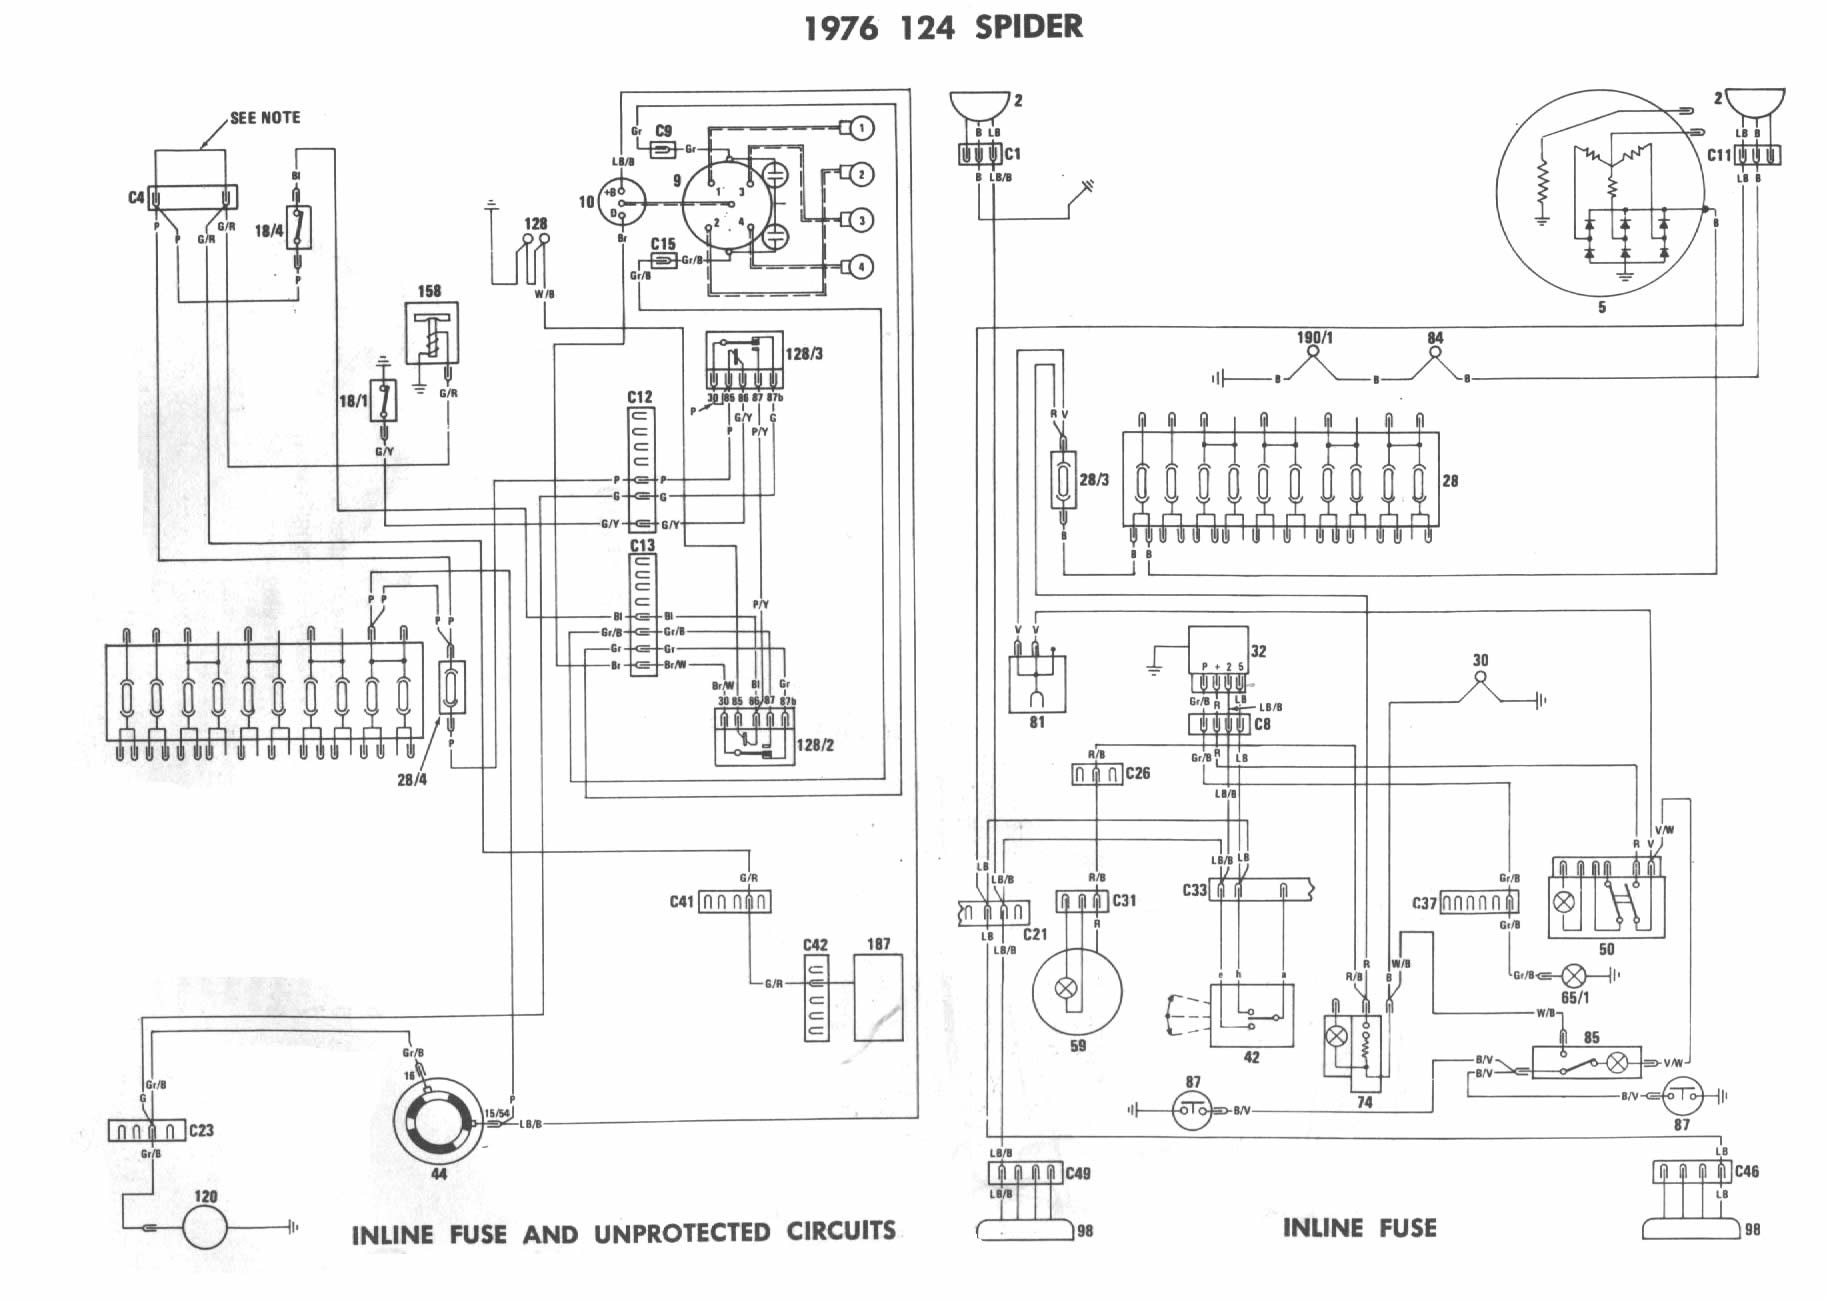 1973 ford ln 500 owners manual pdf